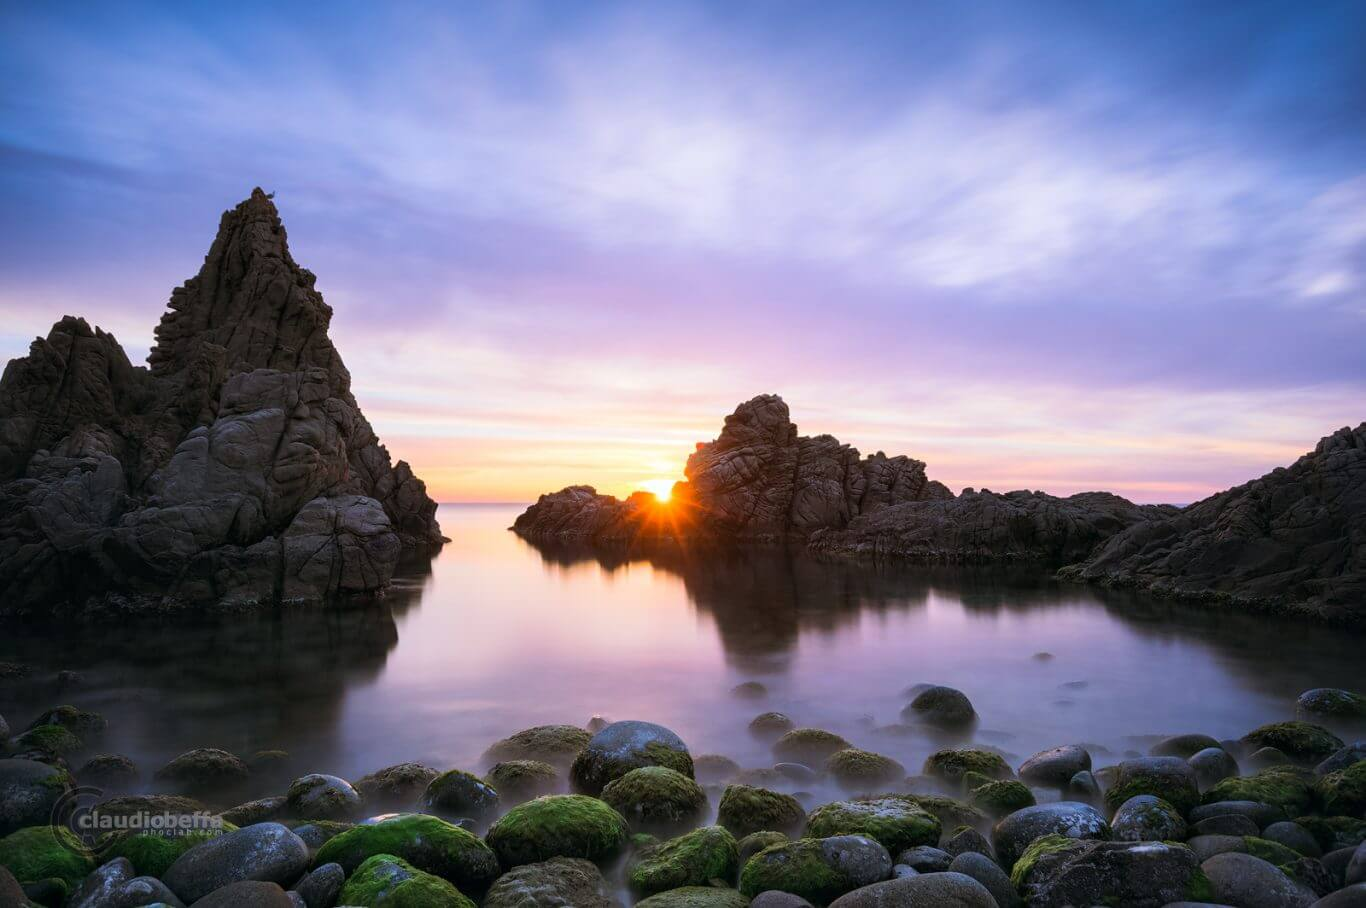 Capo Pecora, Sardinia, Italy, Sea, Seascape, Sunset, Sun, Sunbeams, Cove, Shore, Pebbles, Rocks, Long exposure, Convergence